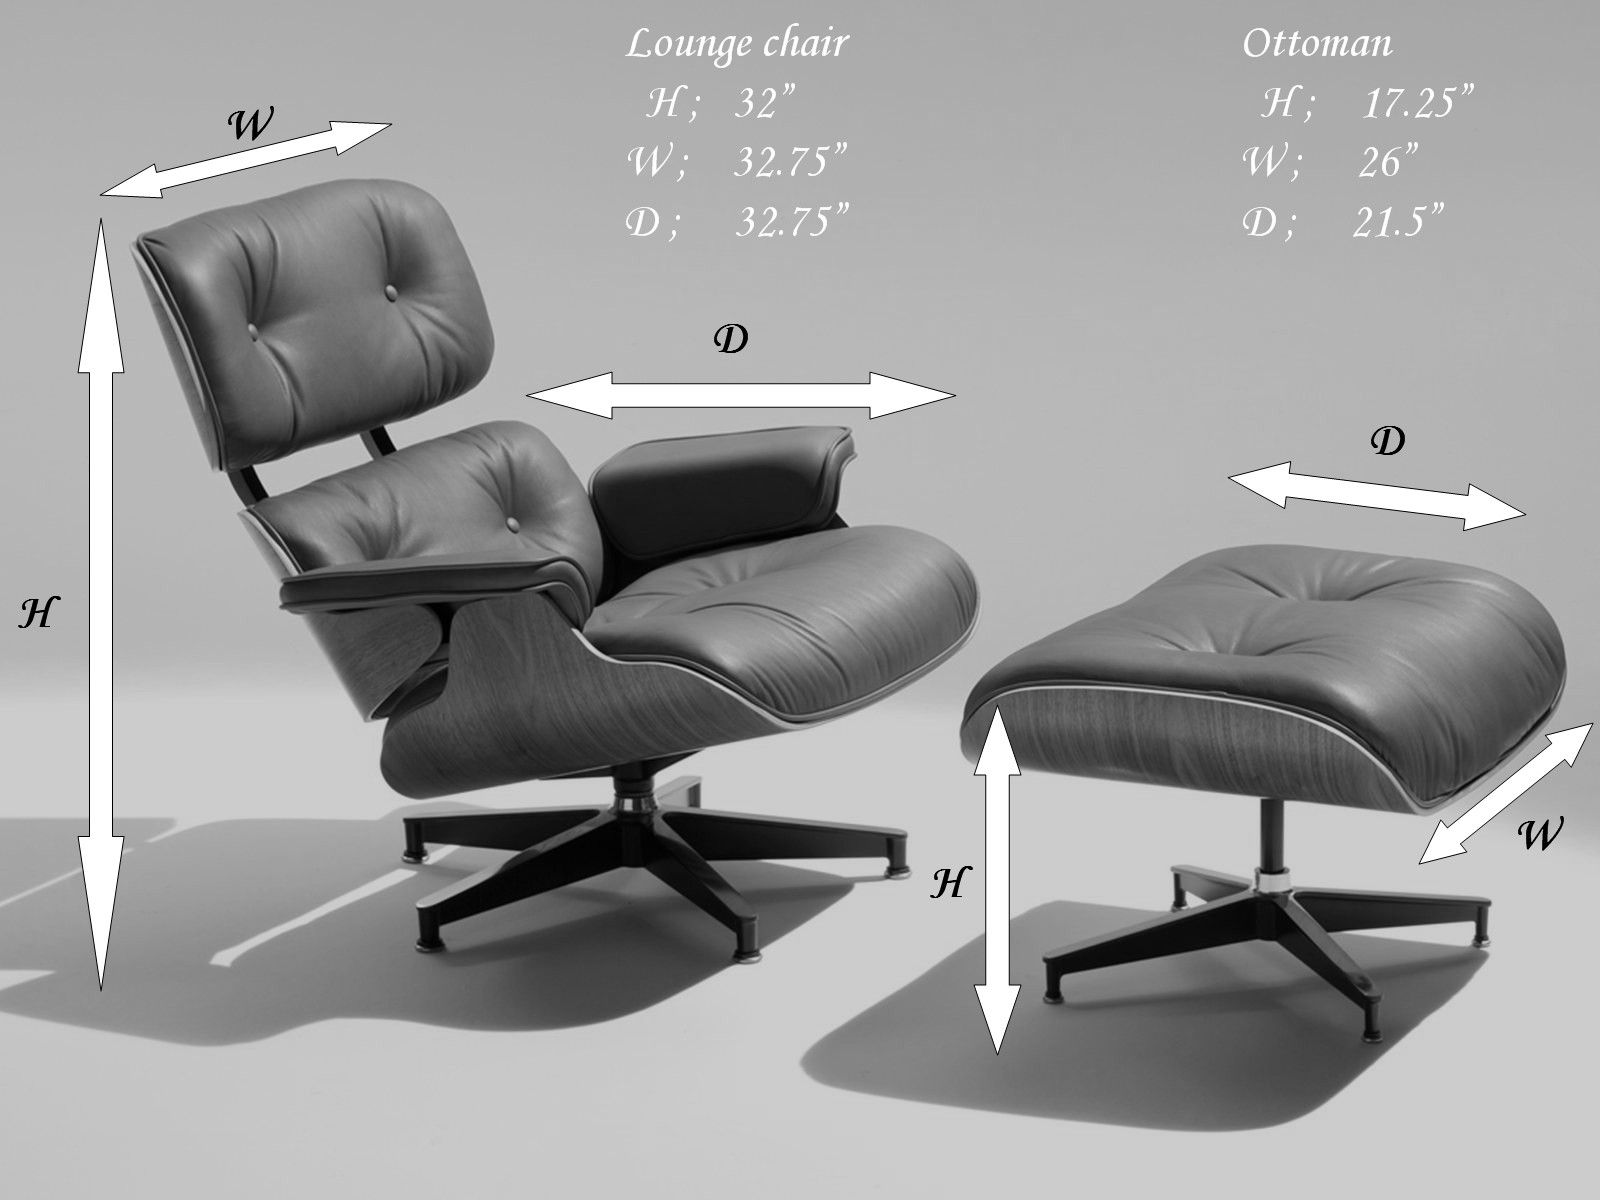 Family room herman miller eames chairs - Eames Lounge Chair Google